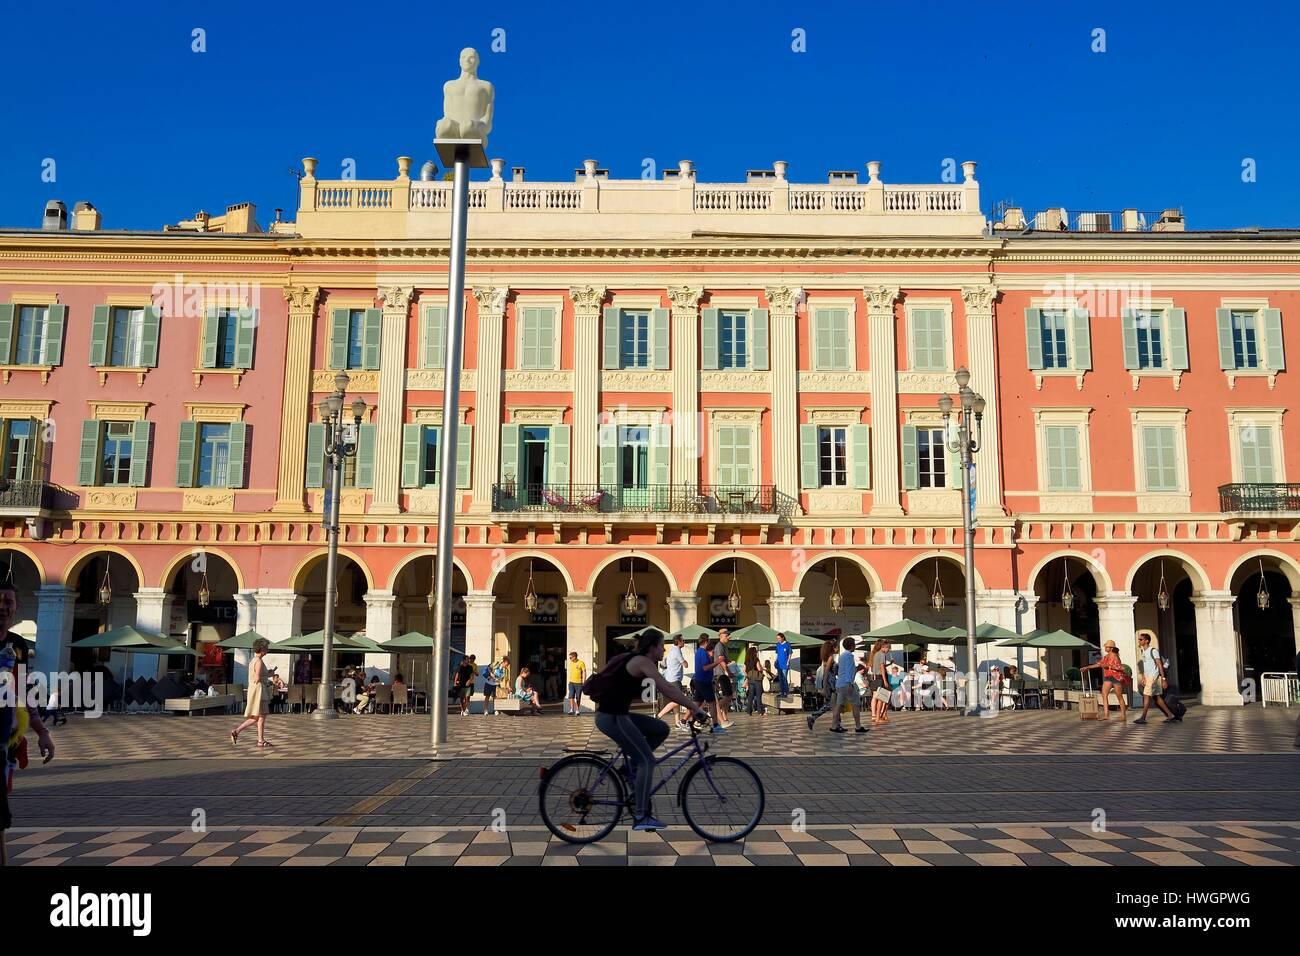 France, Alpes Maritimes, Nice, Old Town, Place Massena, statues by Jaume Plensa - Stock Image